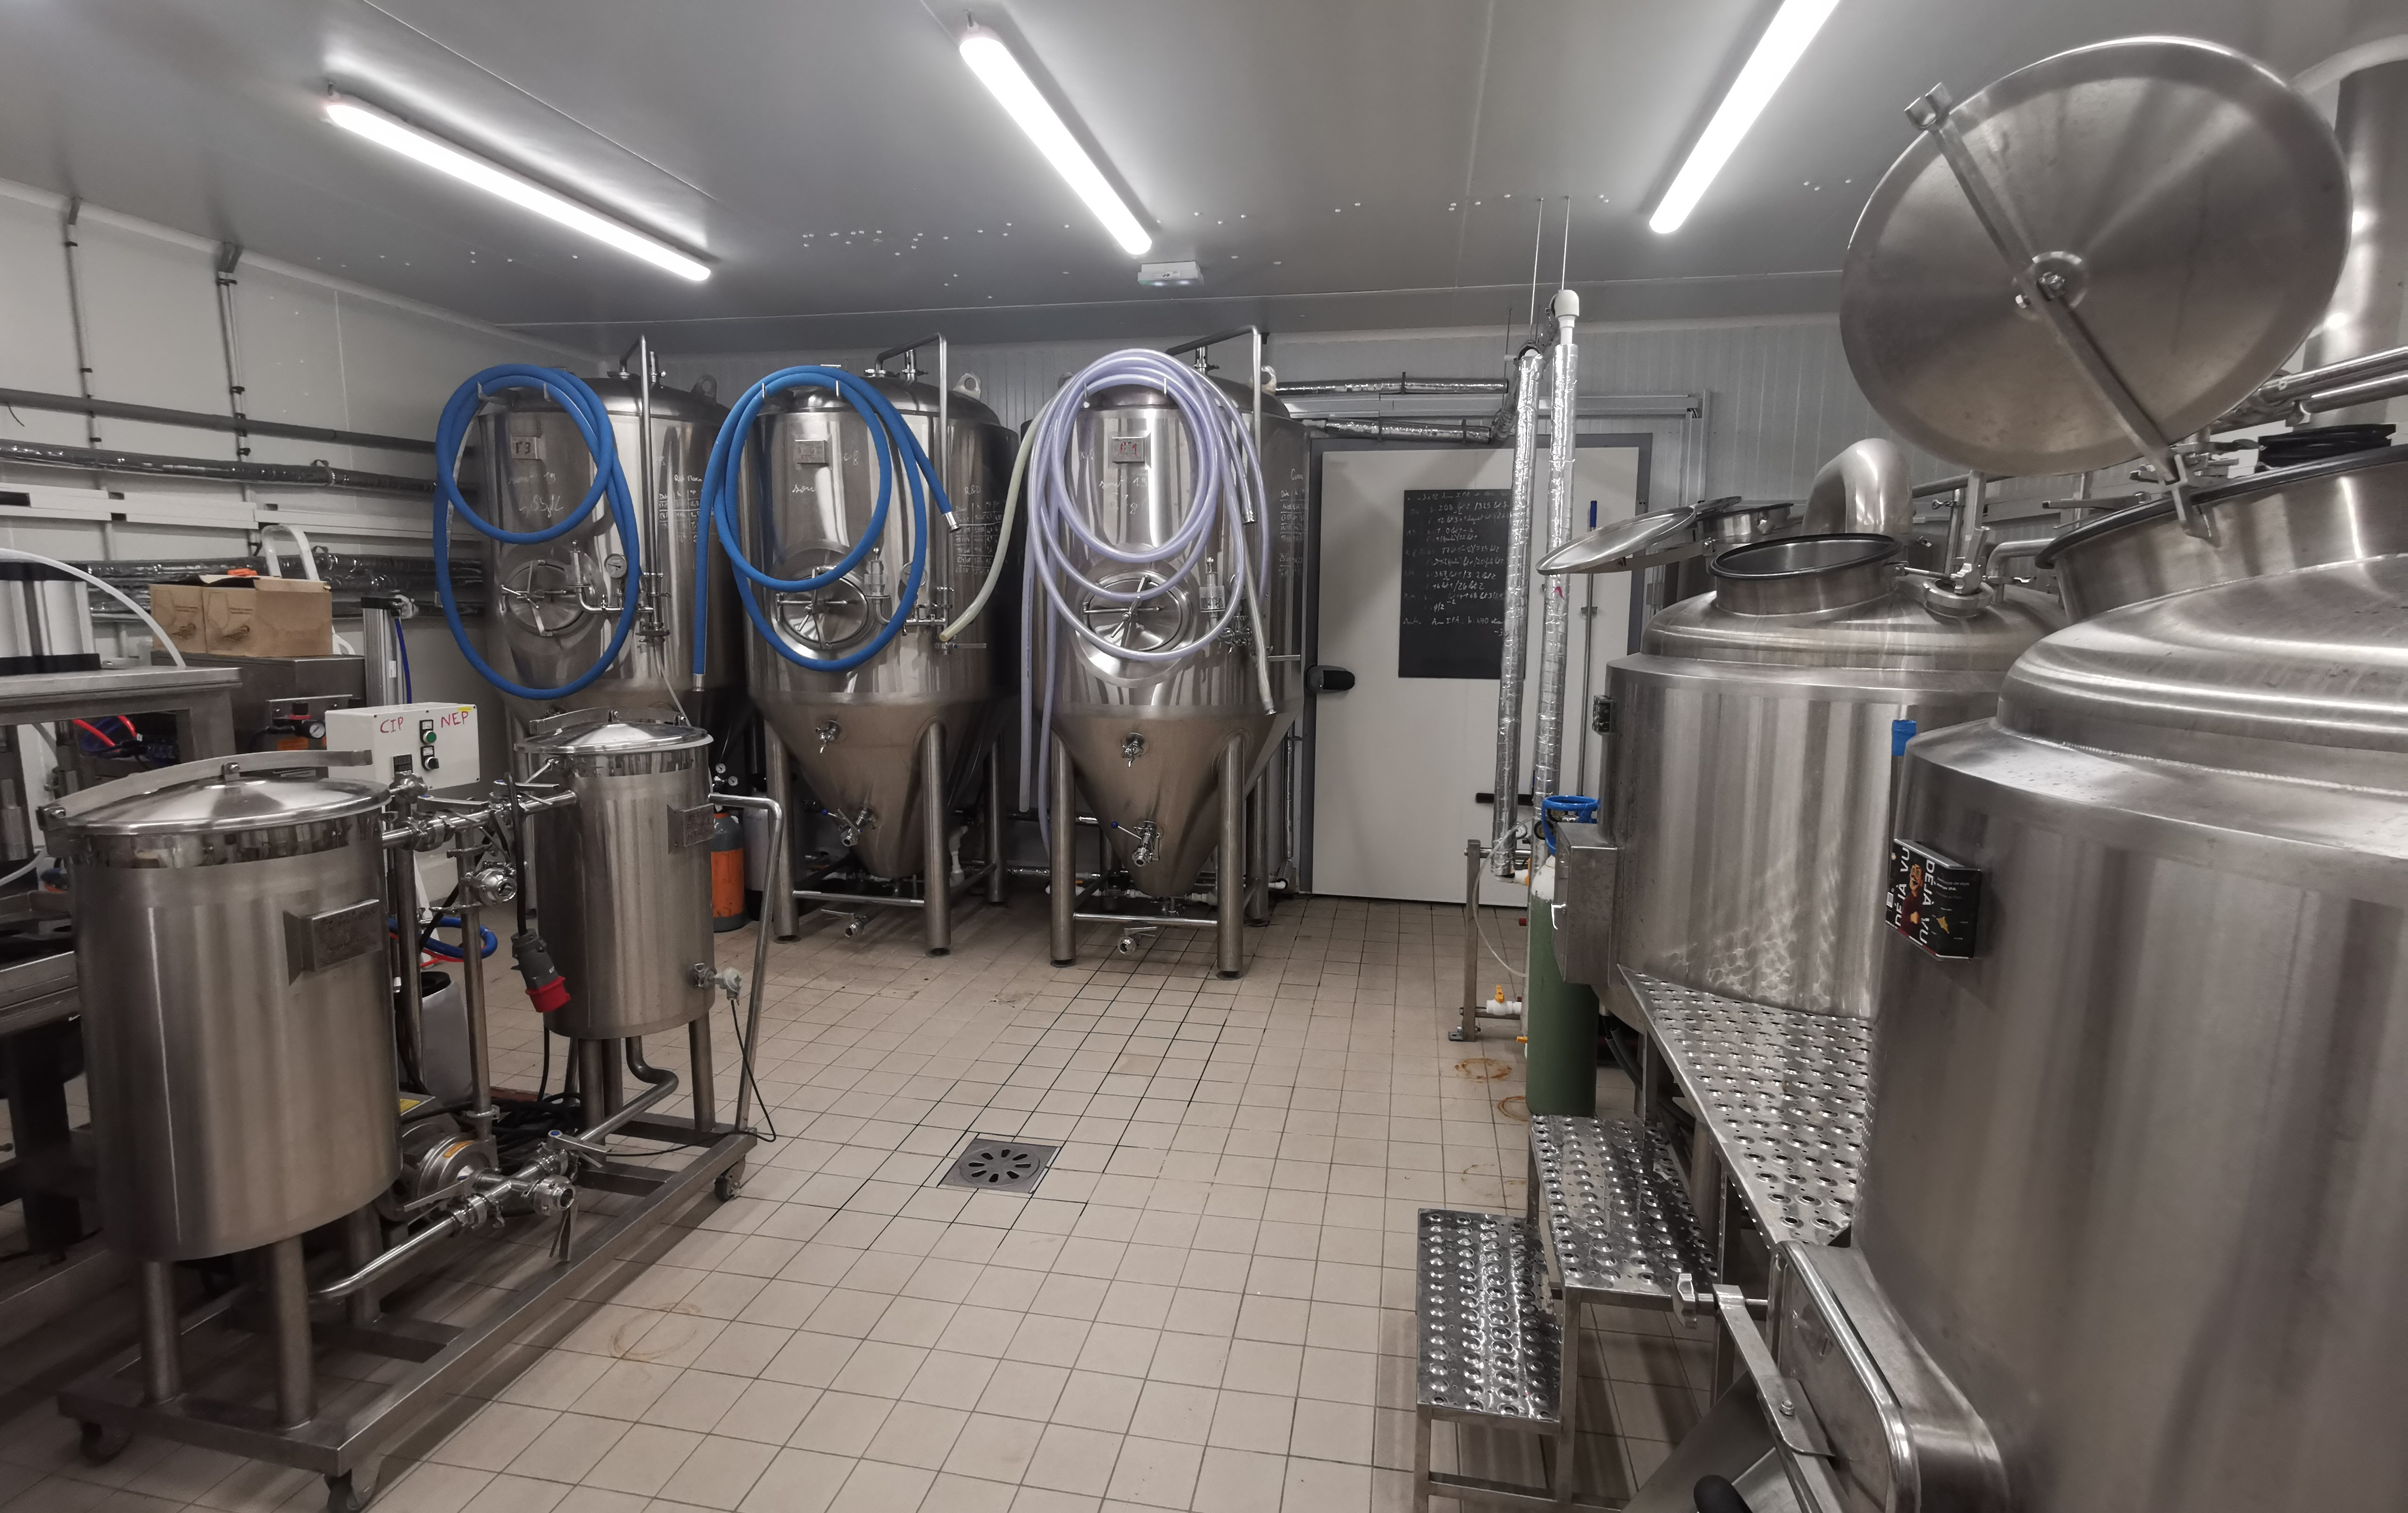 microbrasserie brasseurs normands